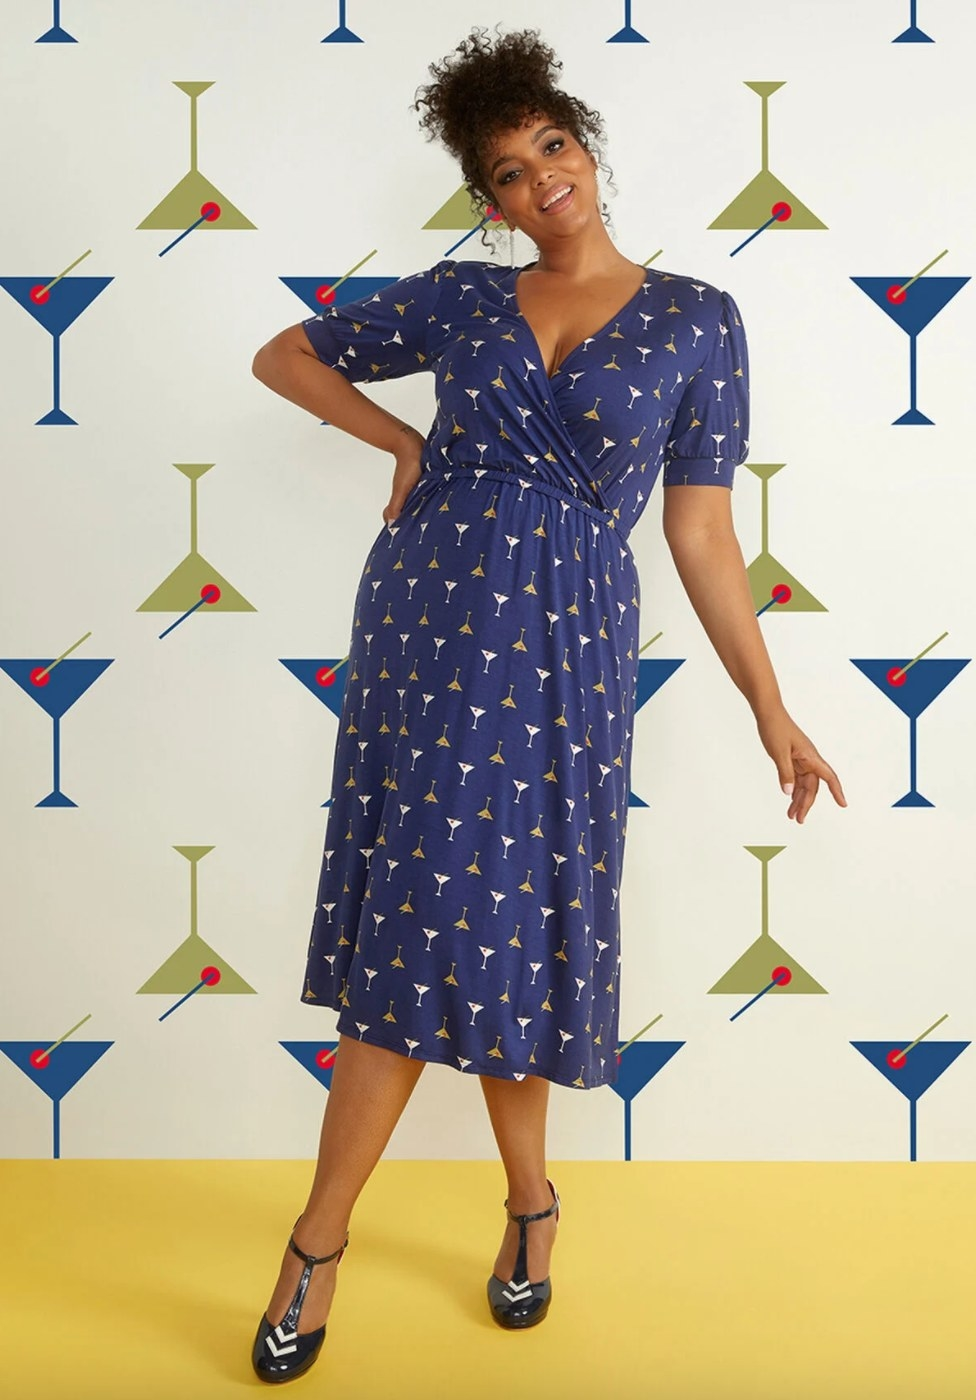 The midi martini dress in navy blue on a model